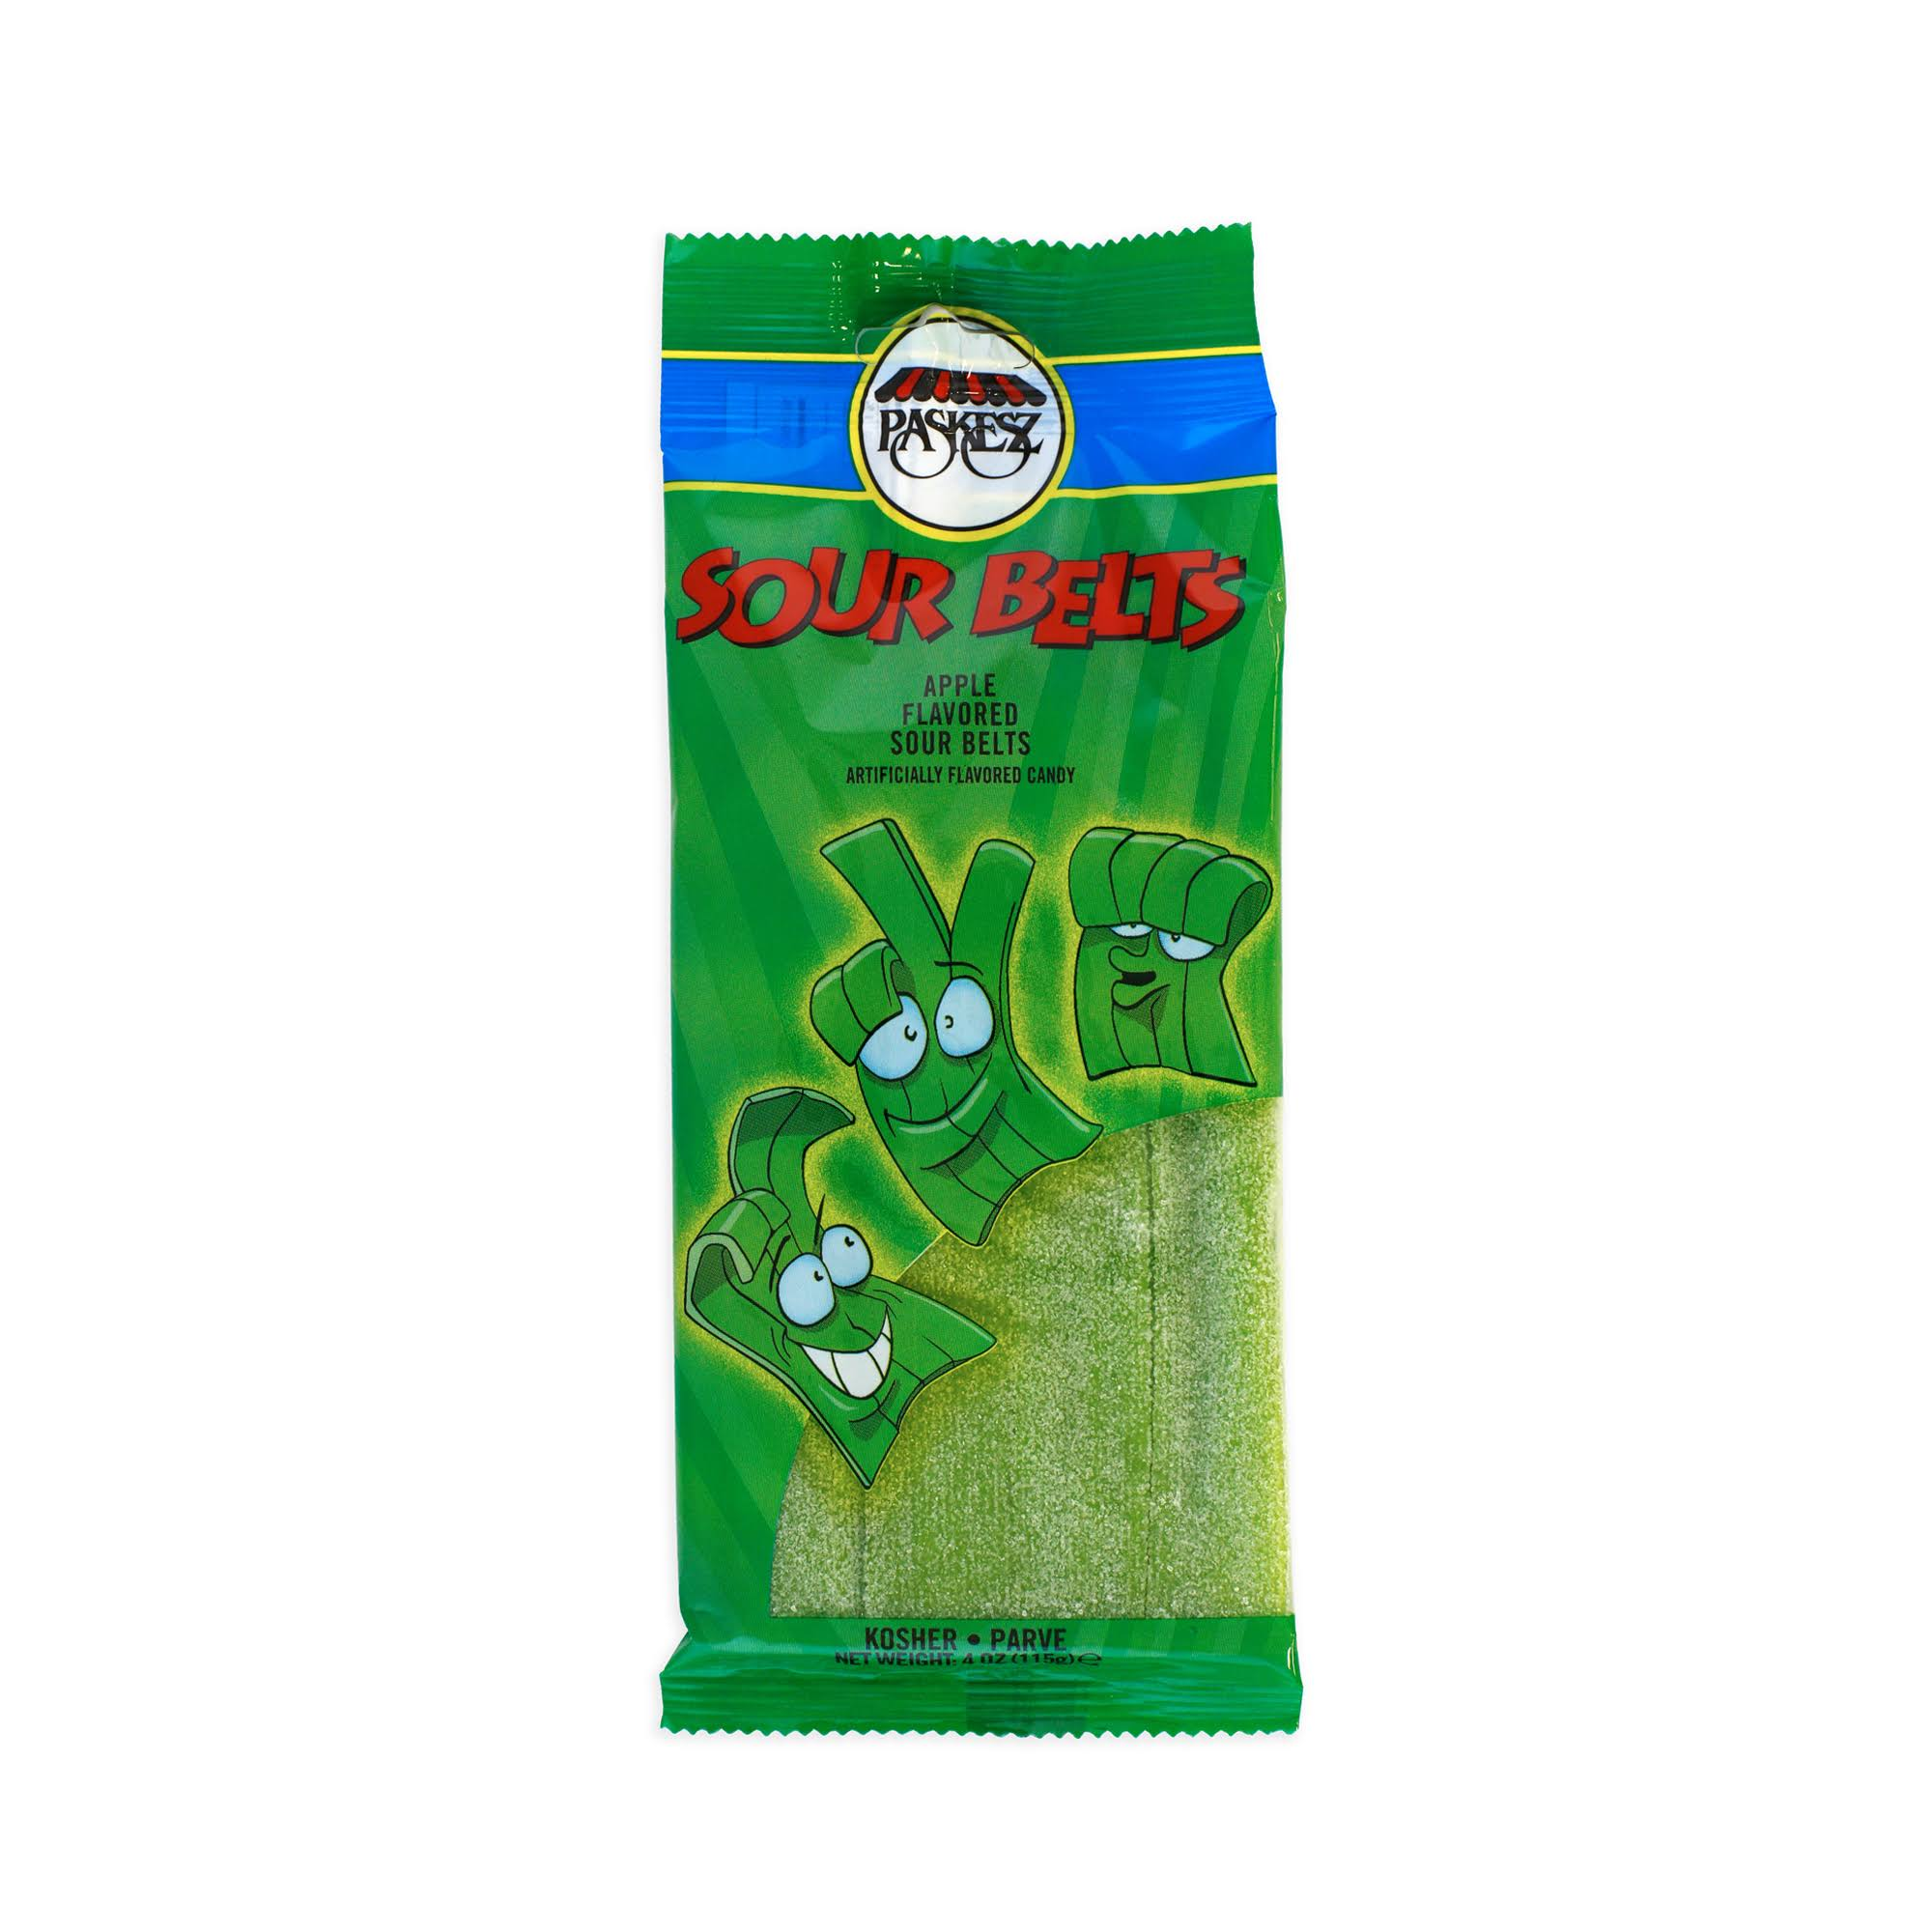 Paskesz Sour Belts Cany - Apple, 4oz, 6pcs